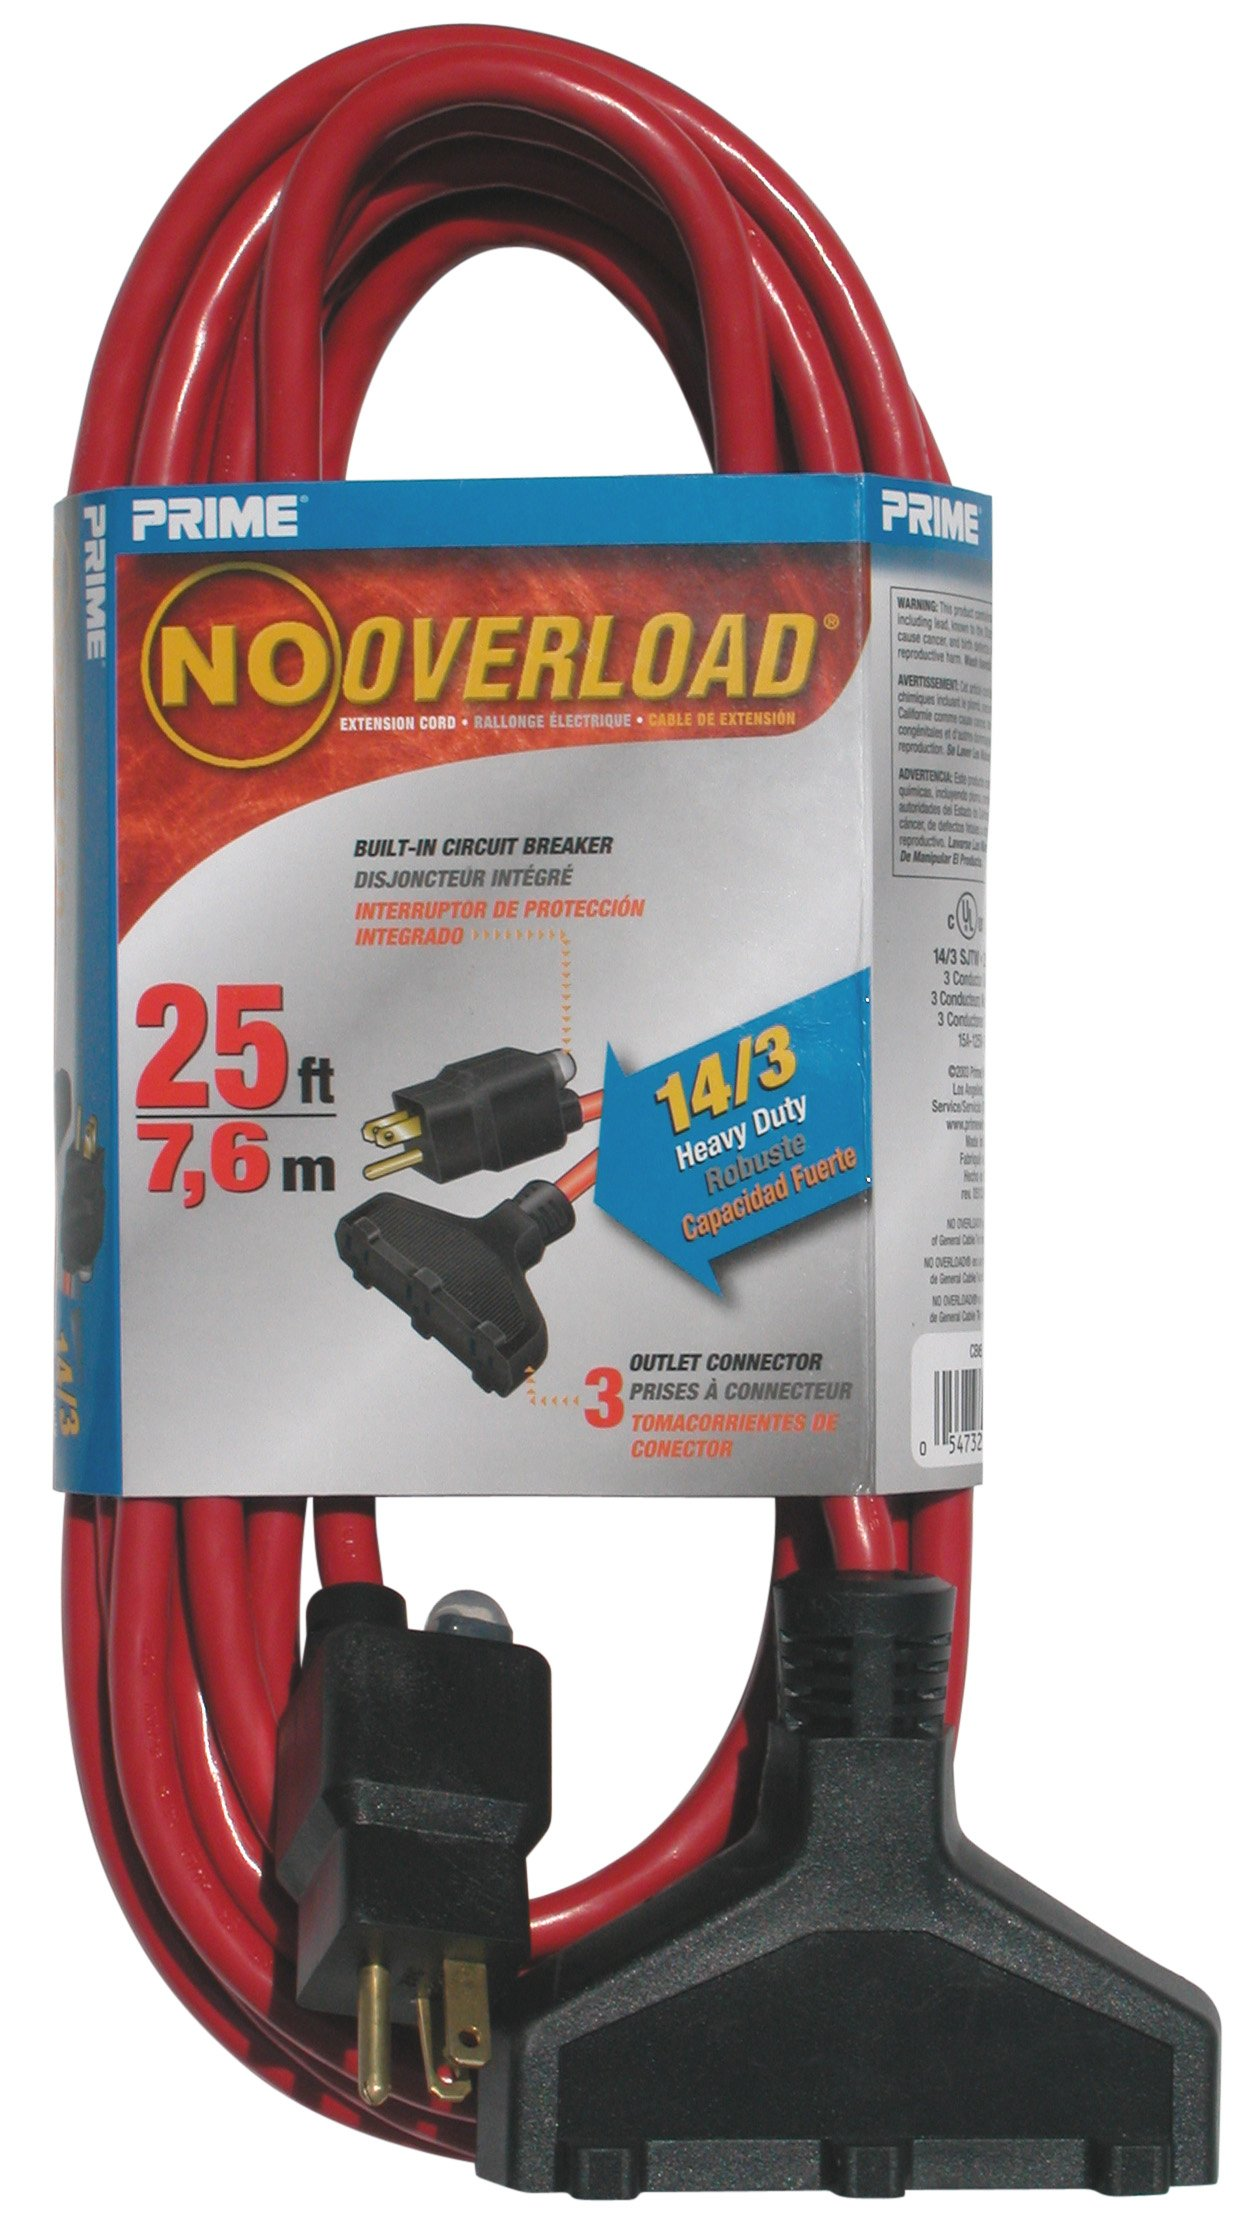 Prime Wire & Cable CB614725 Prime Wire And Cable No Overload Extension Cords, Outdoor, Triple Tap, 25 Ft